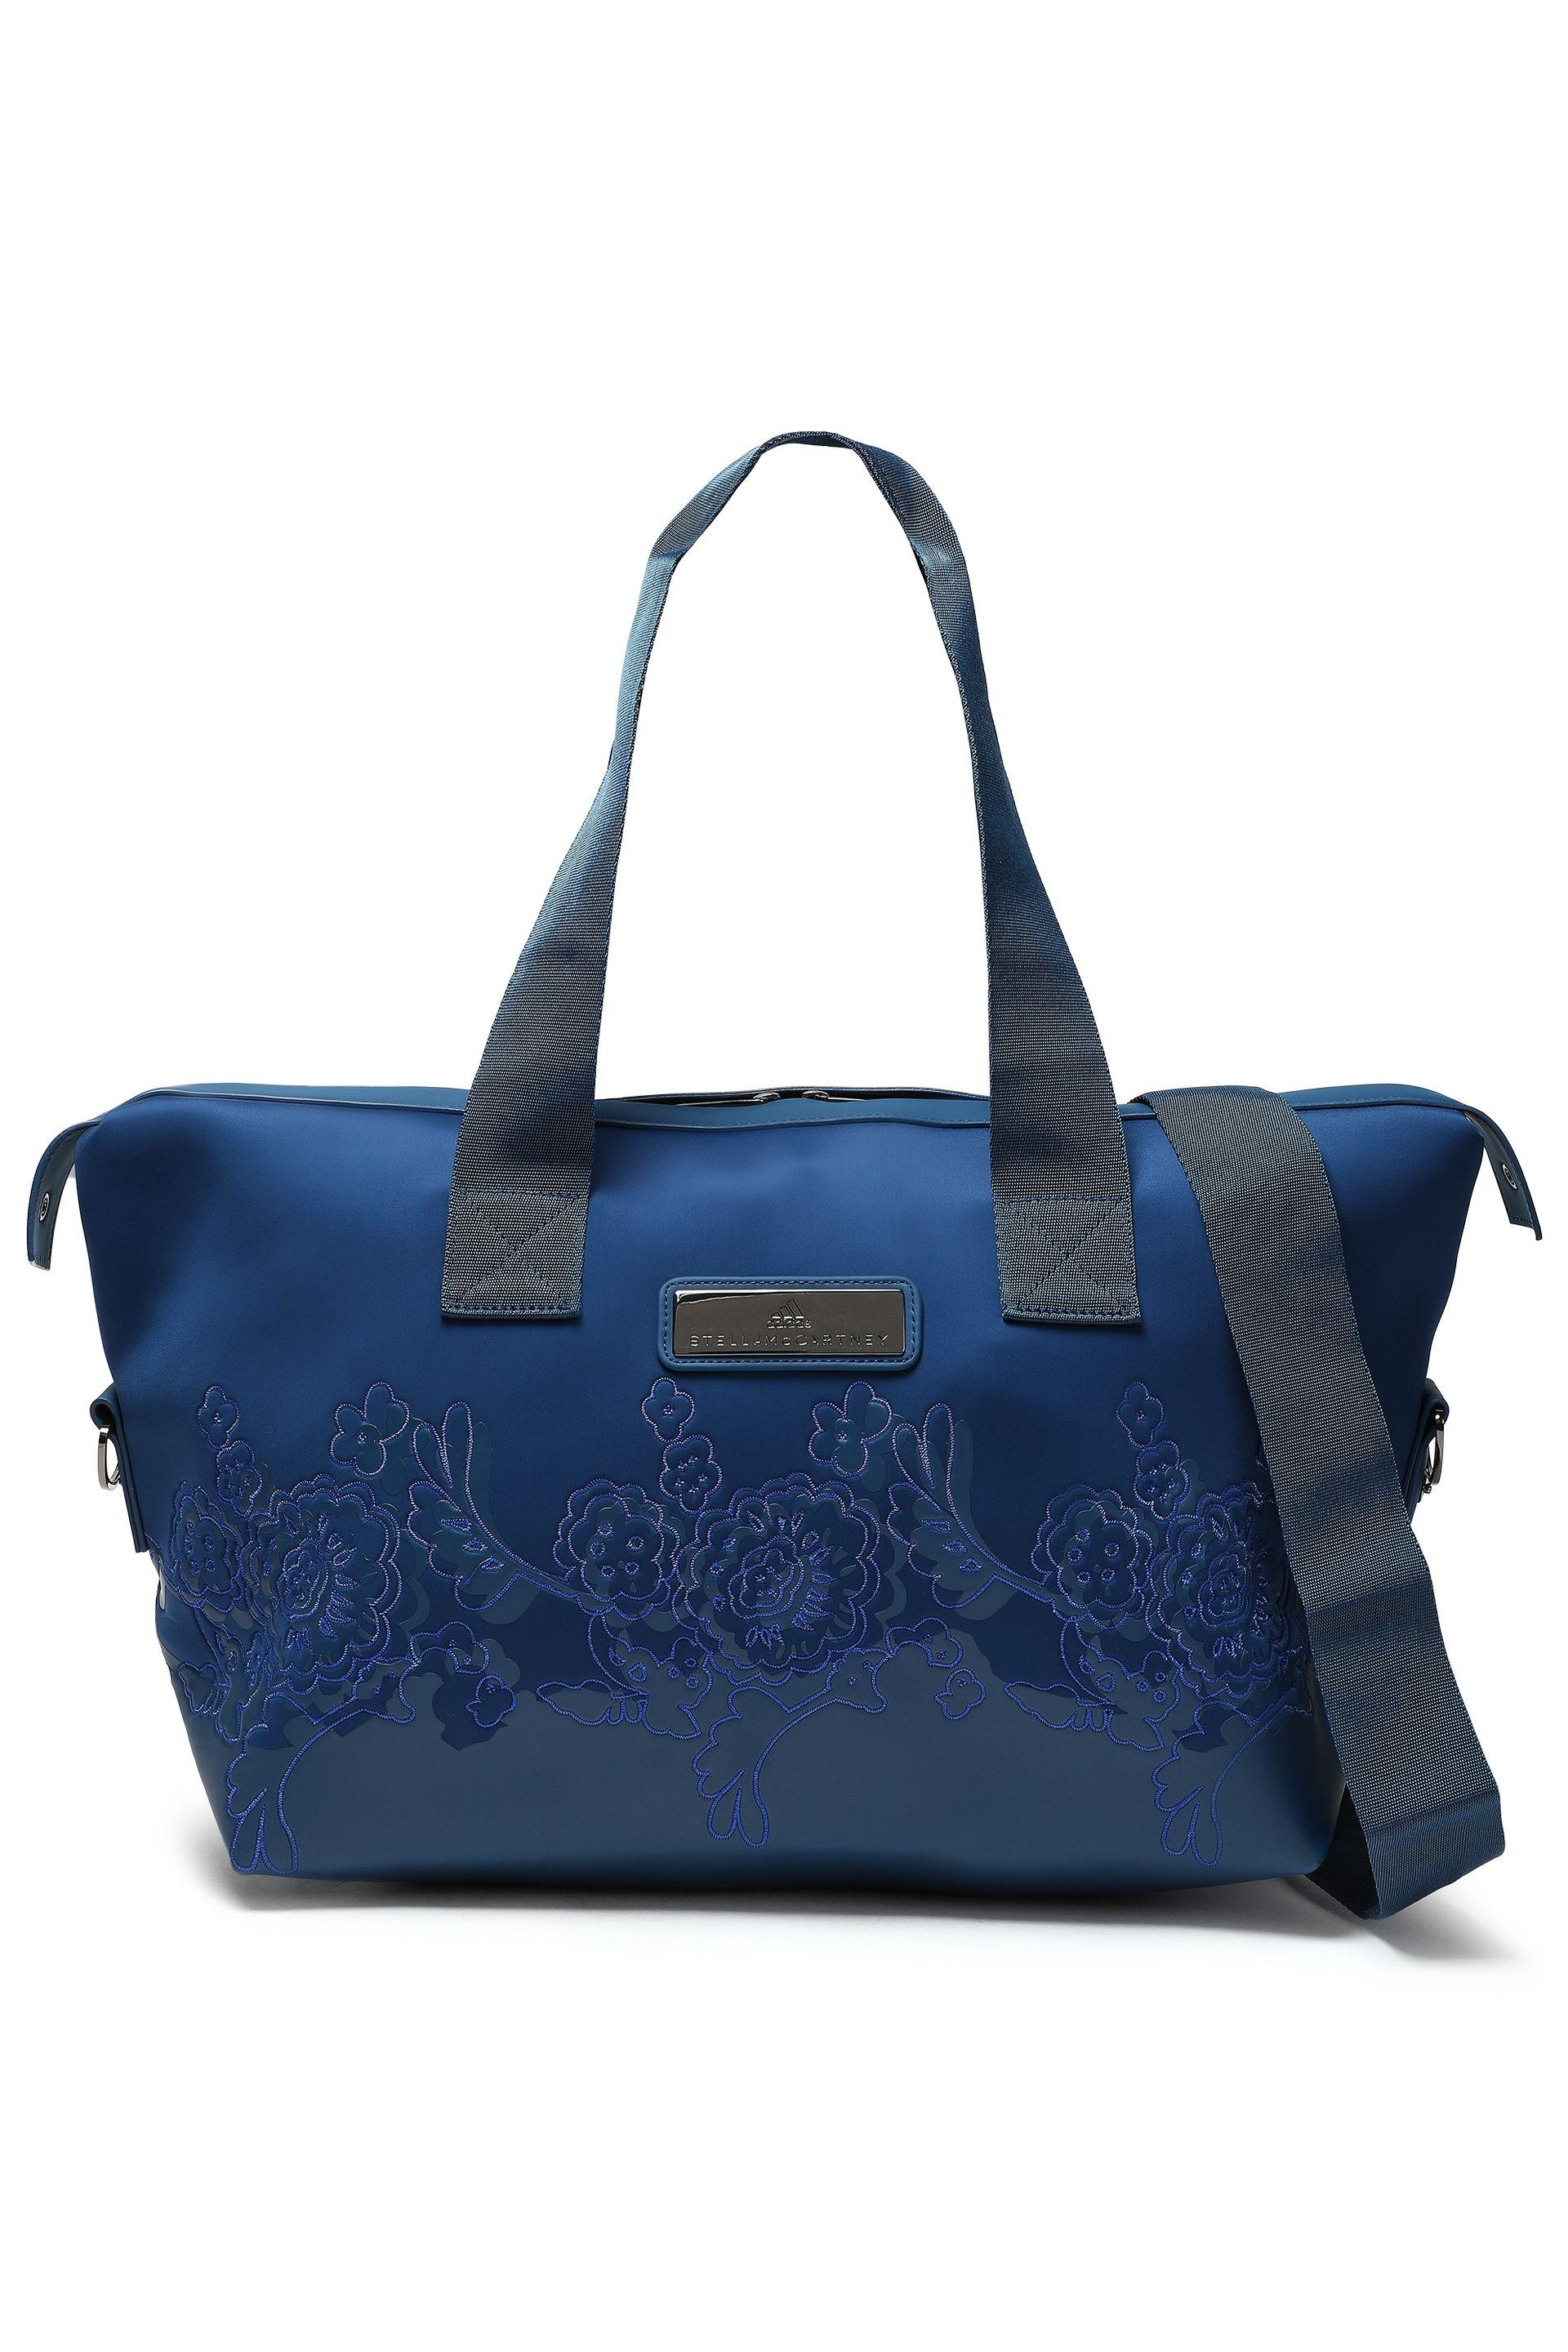 2f7343d18 adidas By Stella McCartney Woman Embellished Scuba Weekend Bag ...